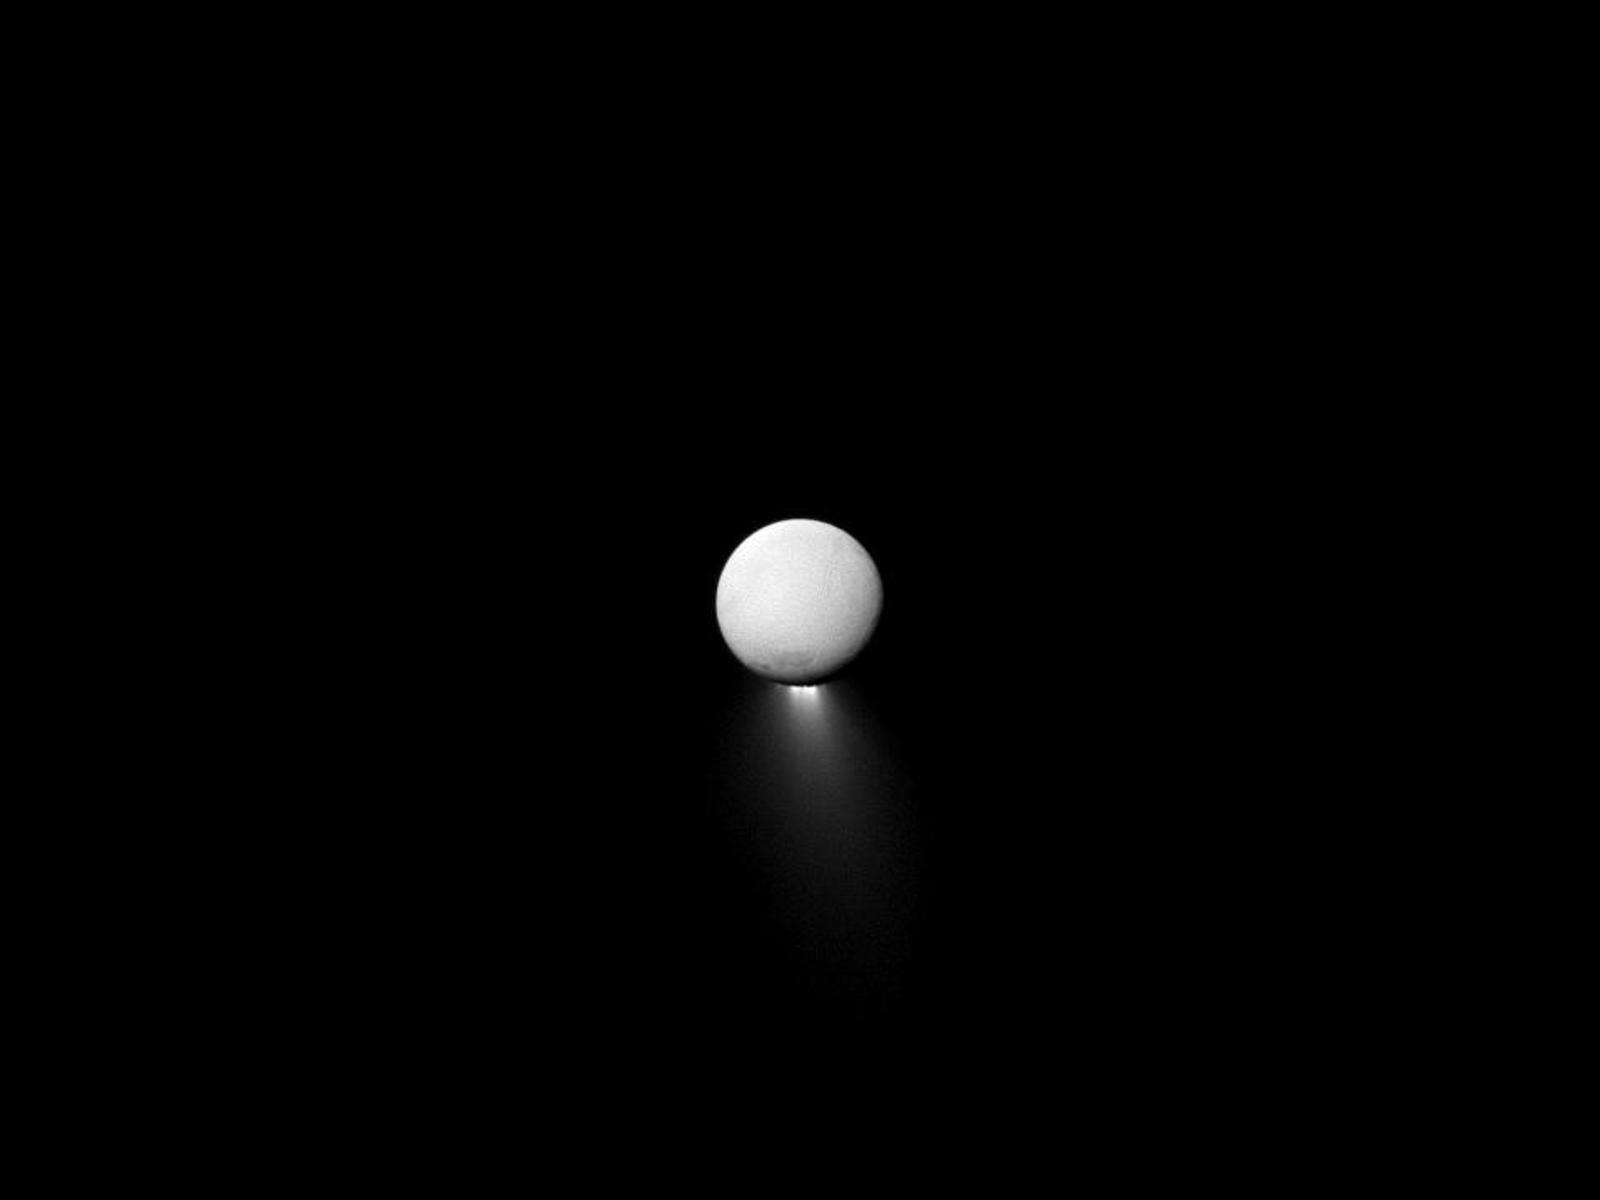 Enceladus Plume space wallpaper